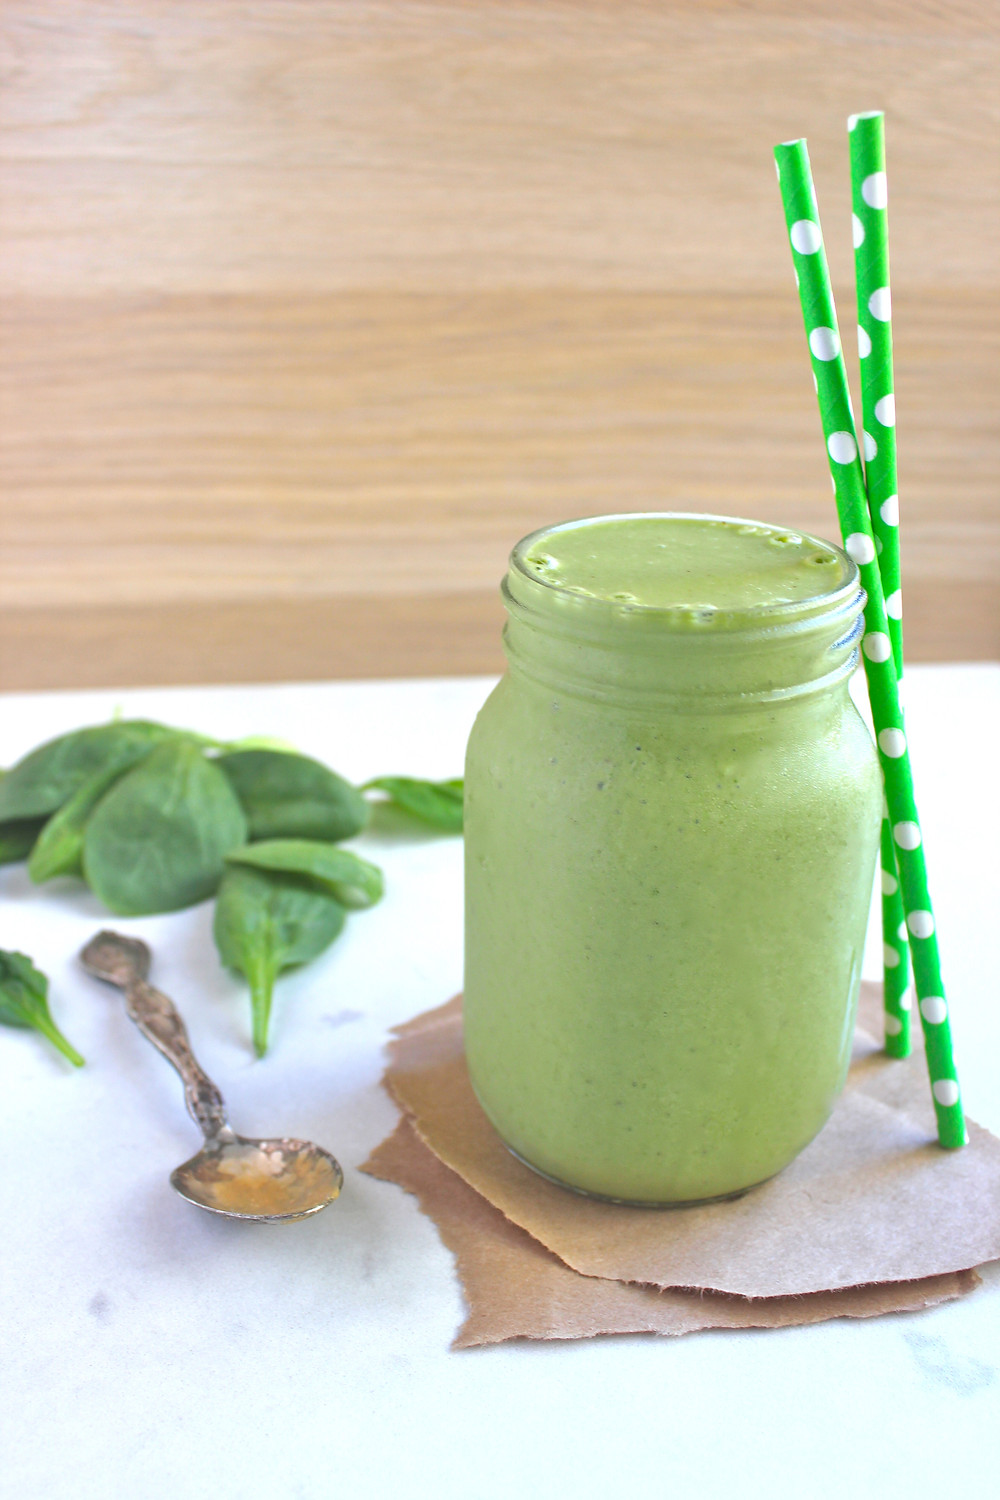 Never tried a green smoothie before? Start here.